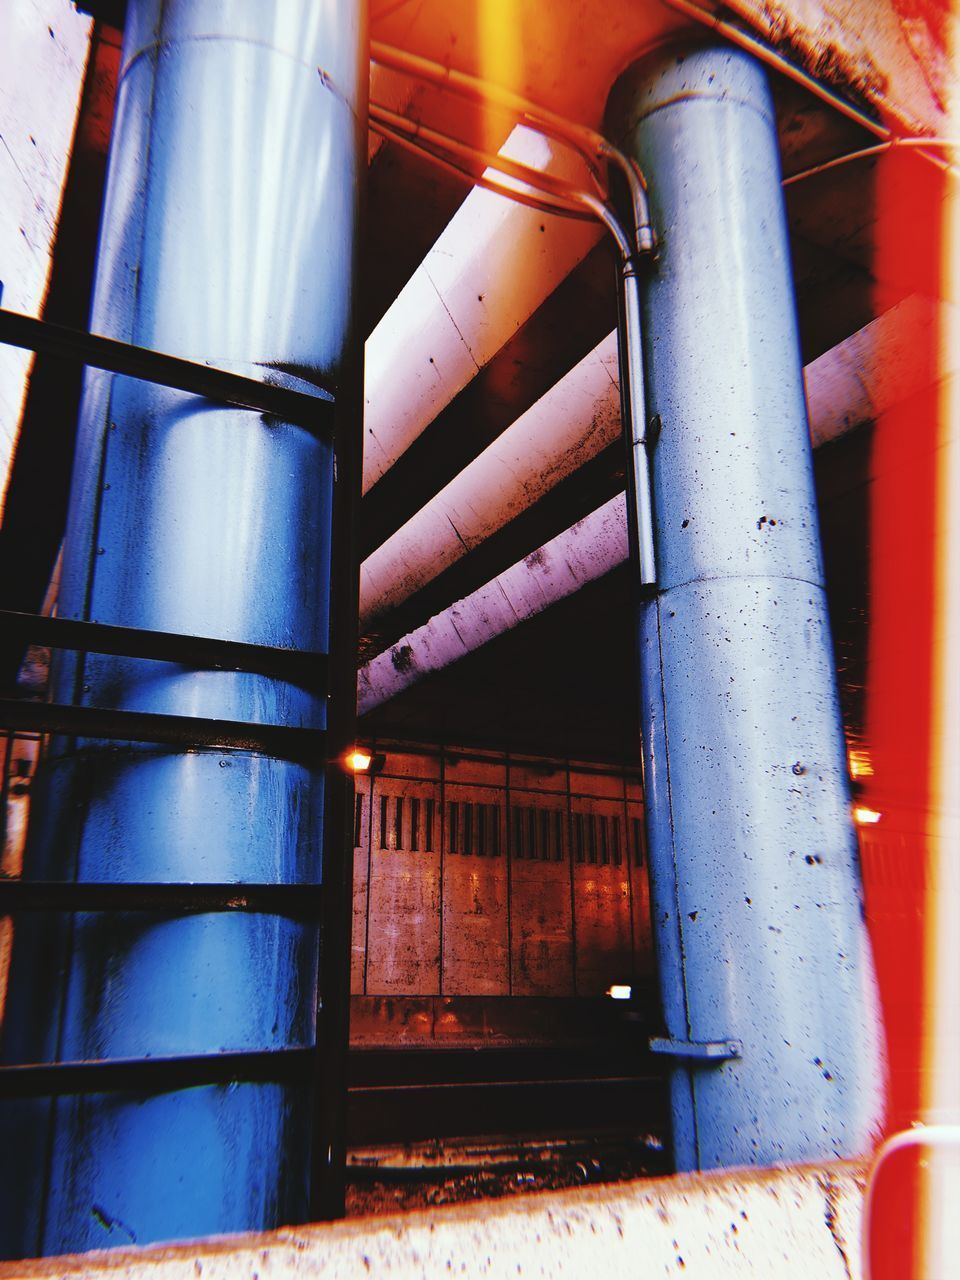 LOW ANGLE VIEW OF ILLUMINATED PIPES IN INDUSTRY